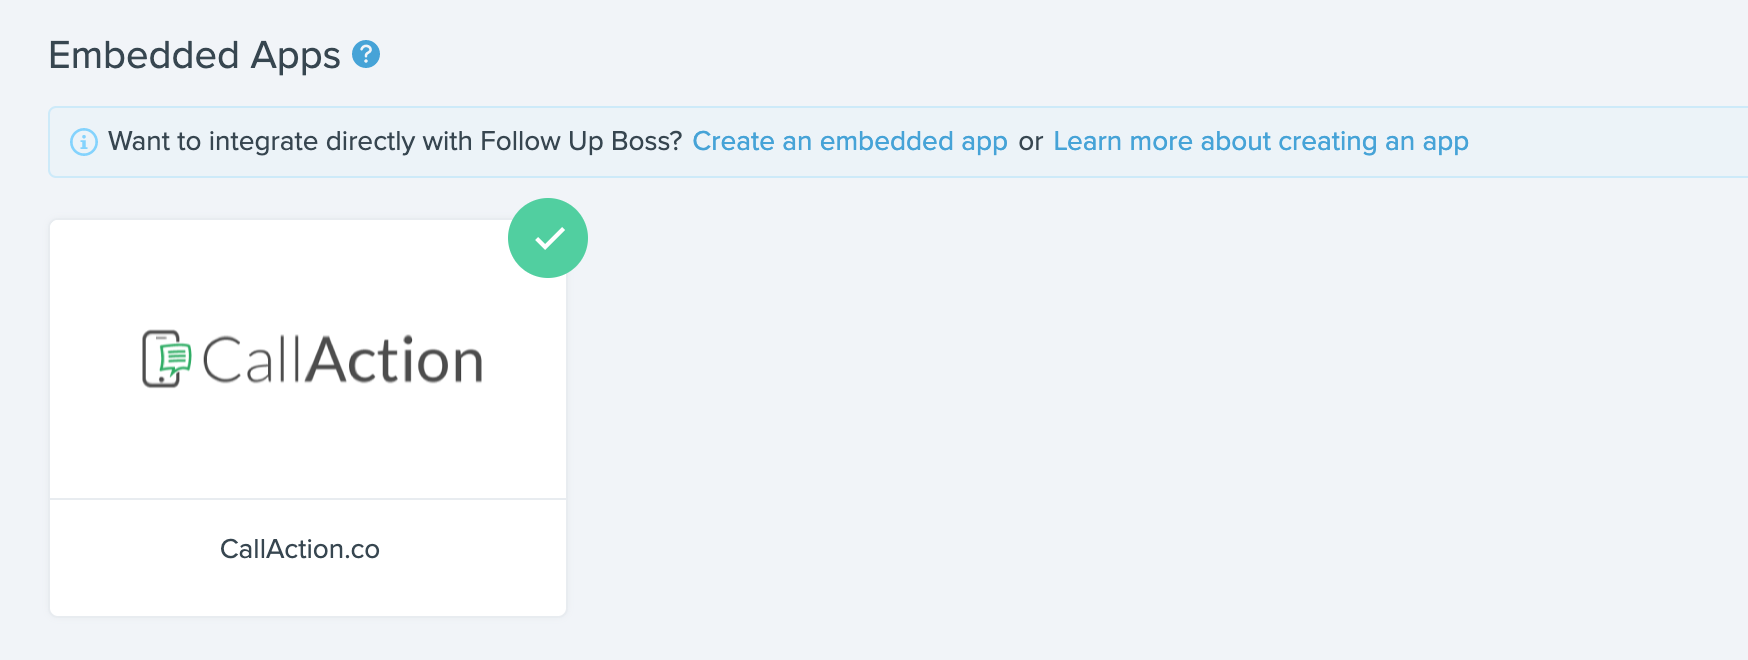 Follow Up Boss Integration with embedded app